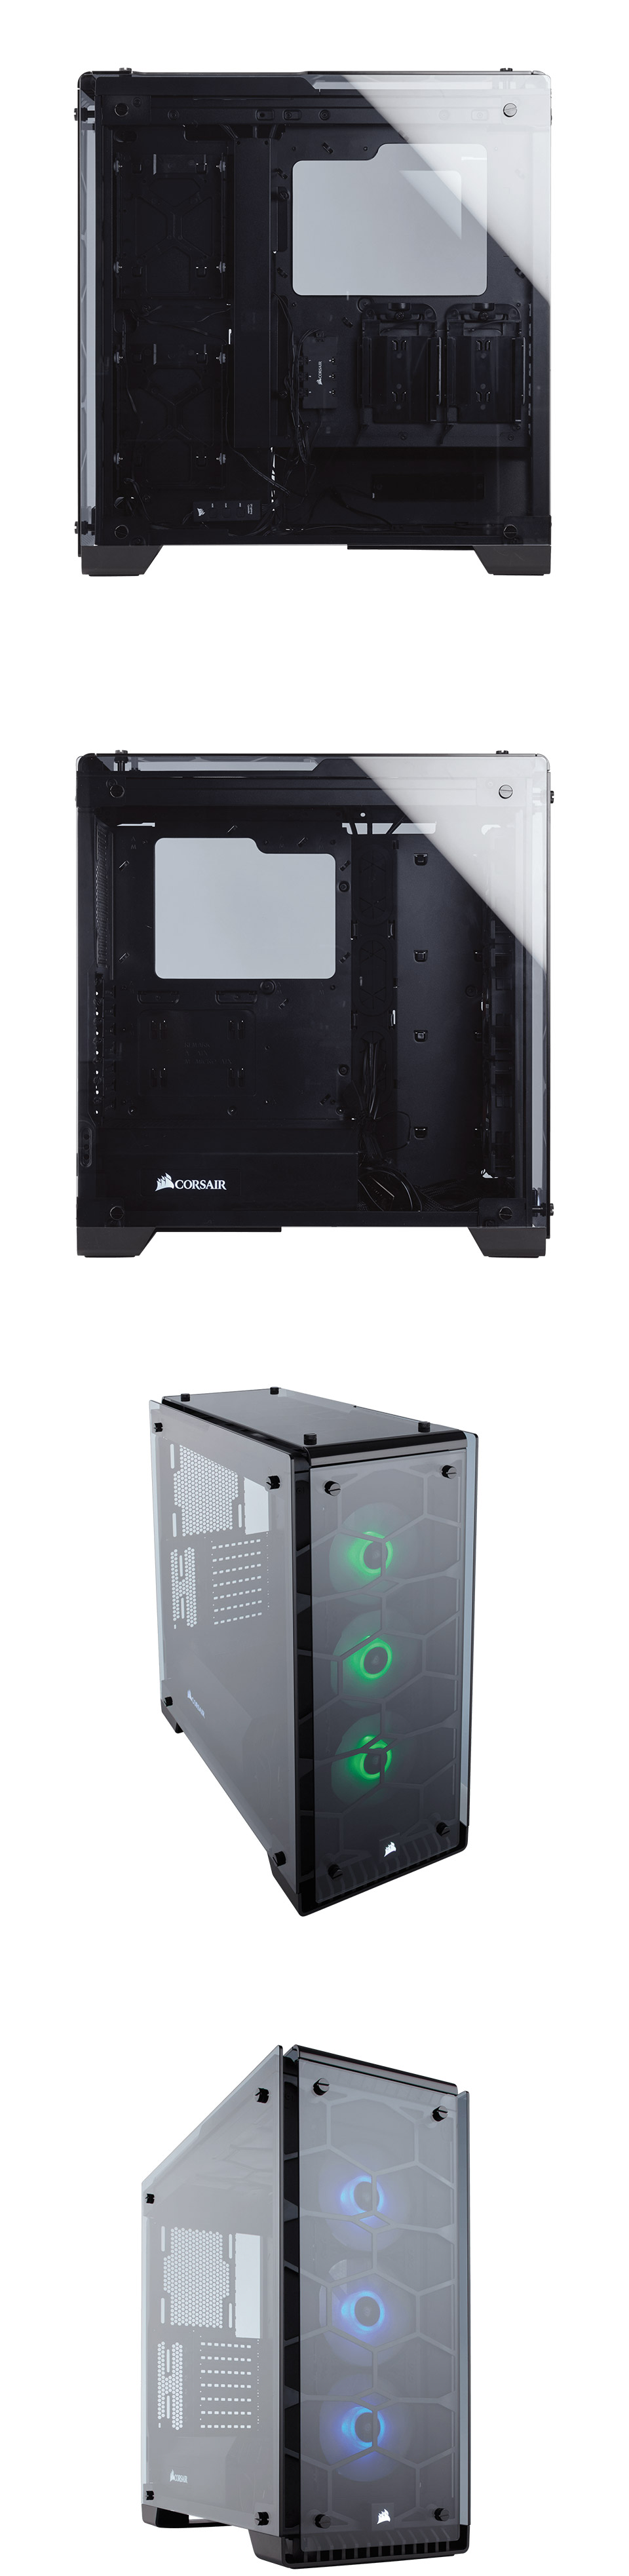 Corsair Crystal 570x Rgb Black Atx Case Cc 9011098 Ww Pc Gear In All The Brings Illumination And Use Of Tempered Glass Pcs To A Whole New Level Offering An Aesthetic That Is Unmatched By